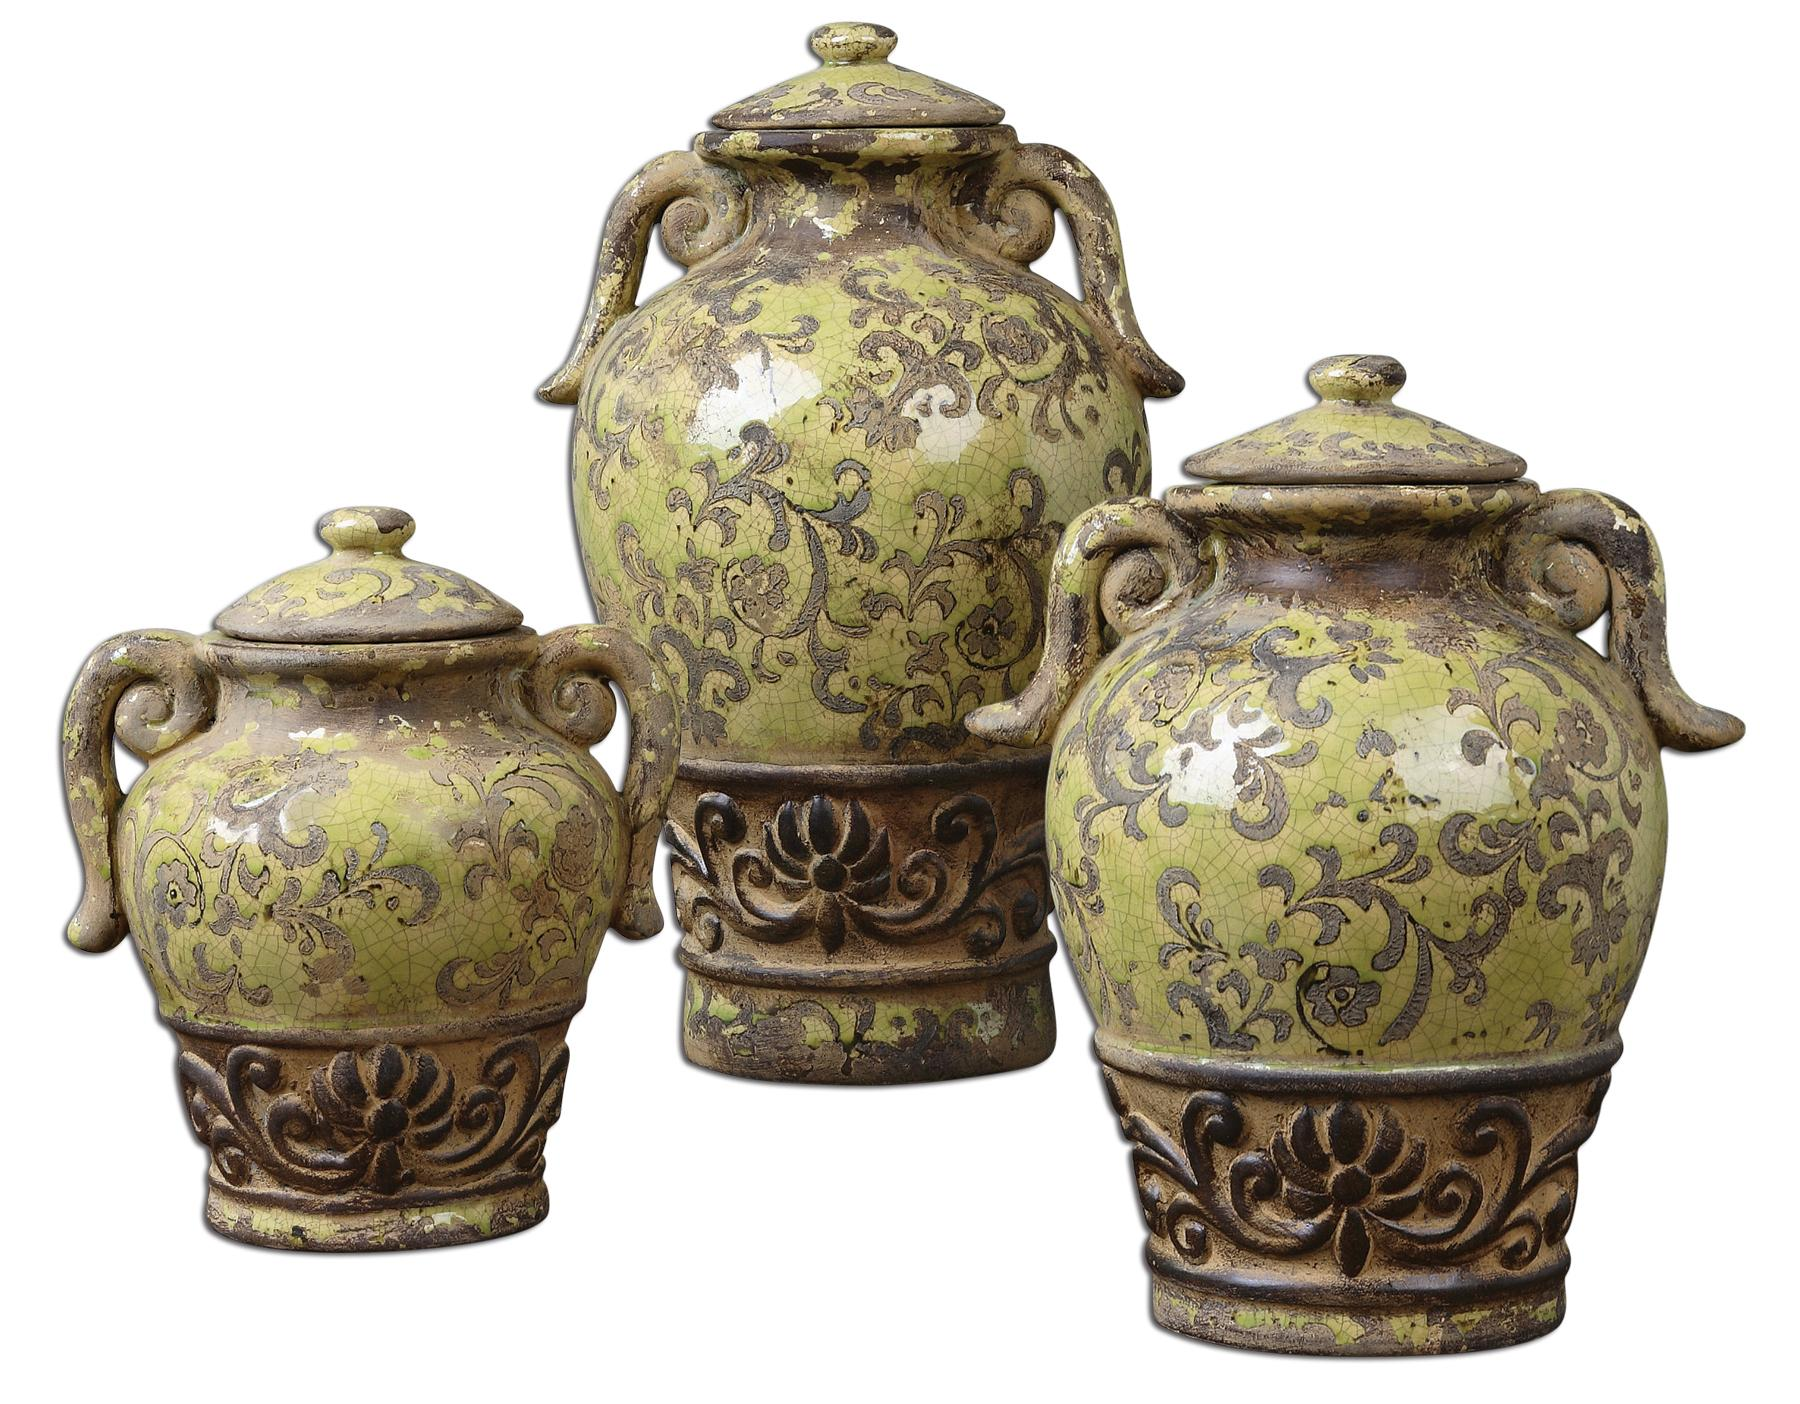 Uttermost Accessories Gian Containers Set of 3 - Item Number: 19716